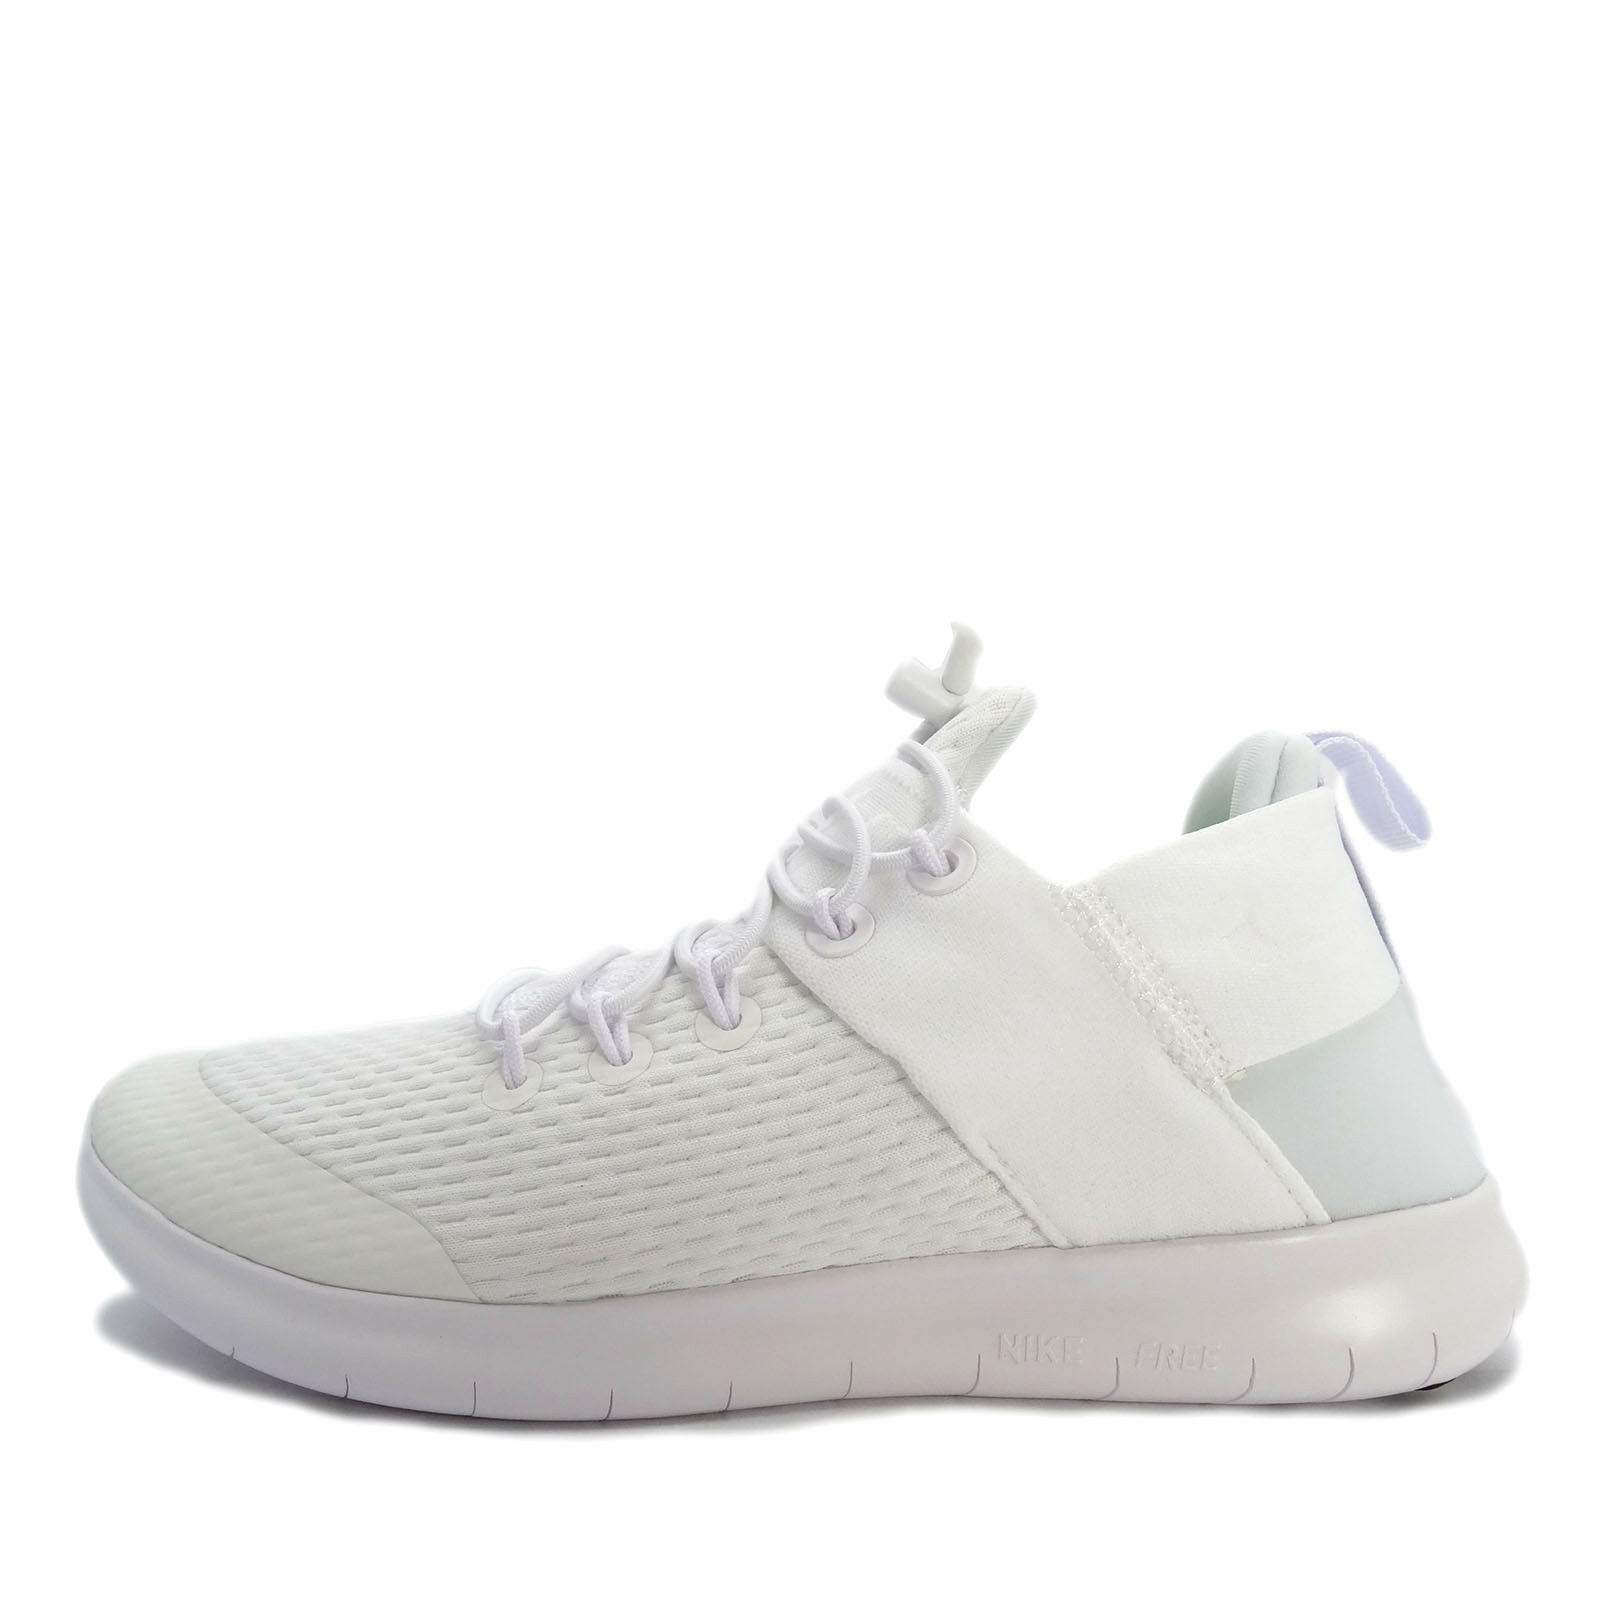 Nike WMNS Free RN CMTR 2018 Price reduction Women Running Shoes Triple White/White